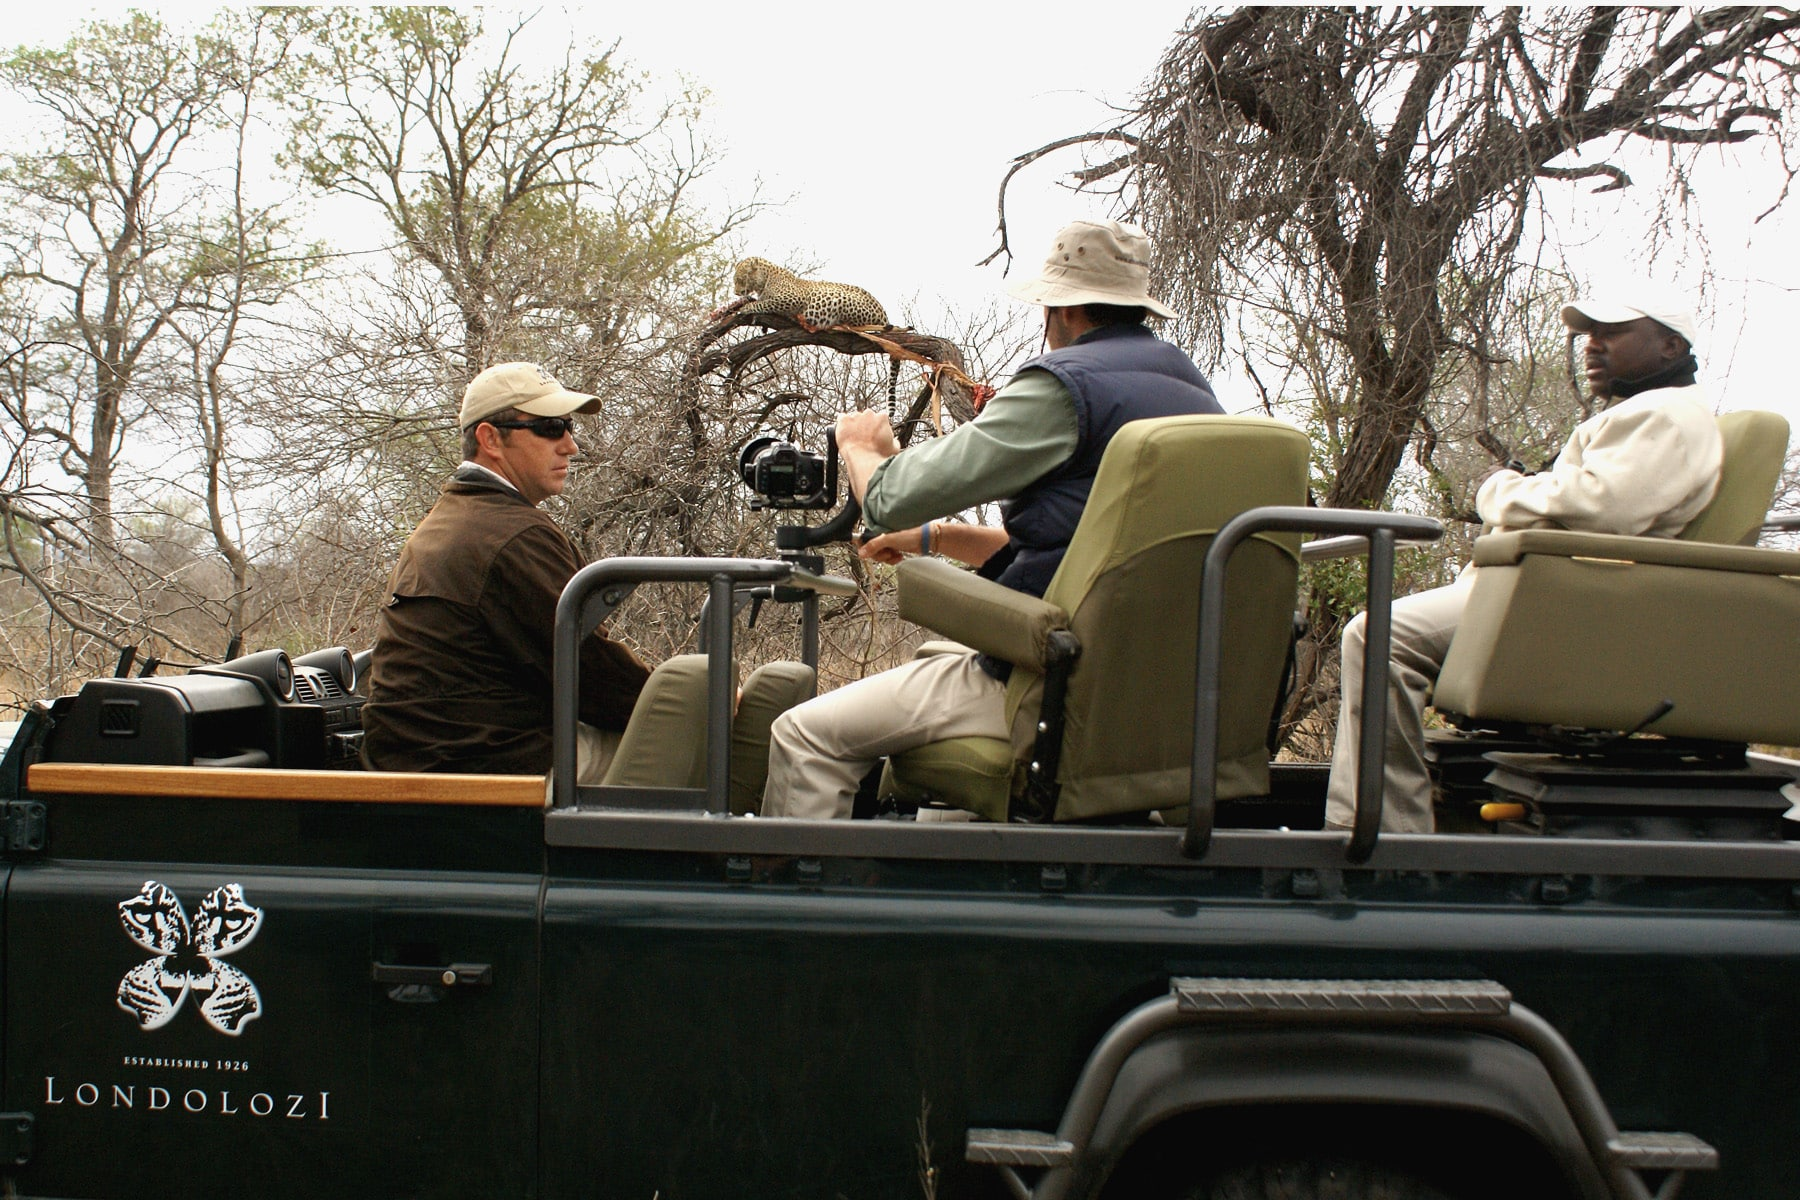 Londolozi guest photographing leopard